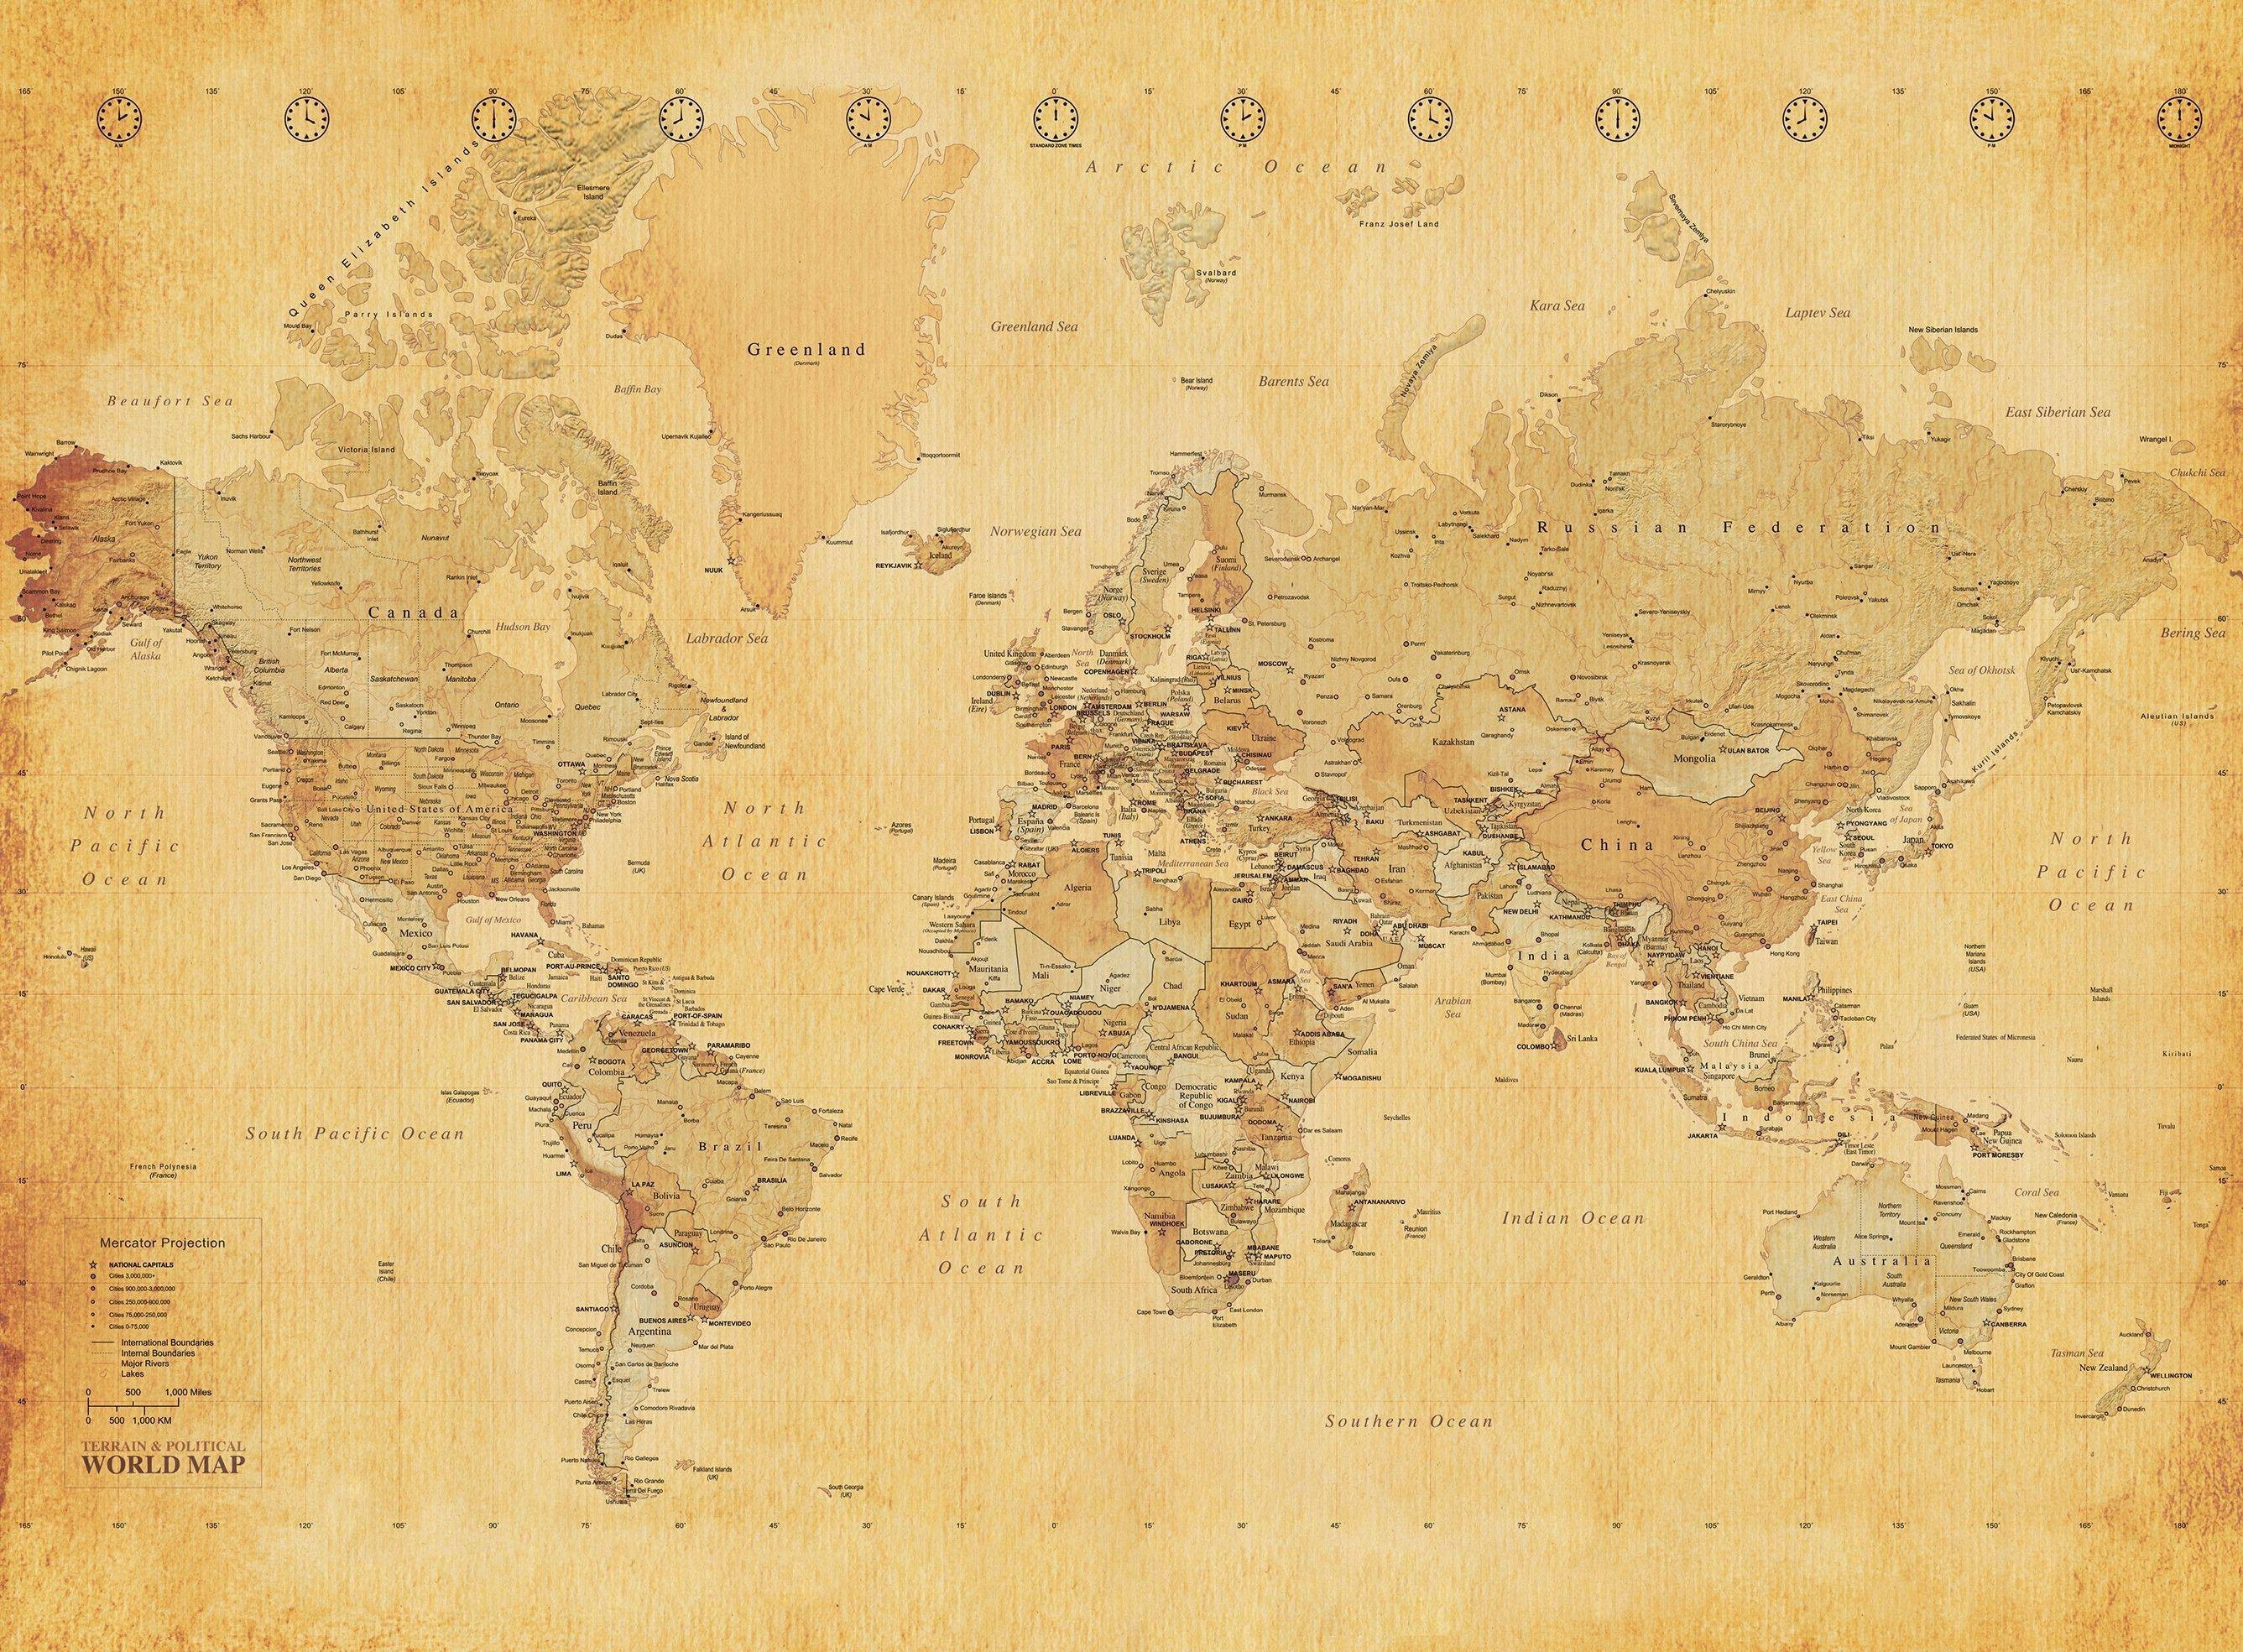 Res: 2673x1969, Old World Map Wallpaper For Walls New Vintage World Map Wallpaper Hd Fresh  Vintage Map Wallpapers